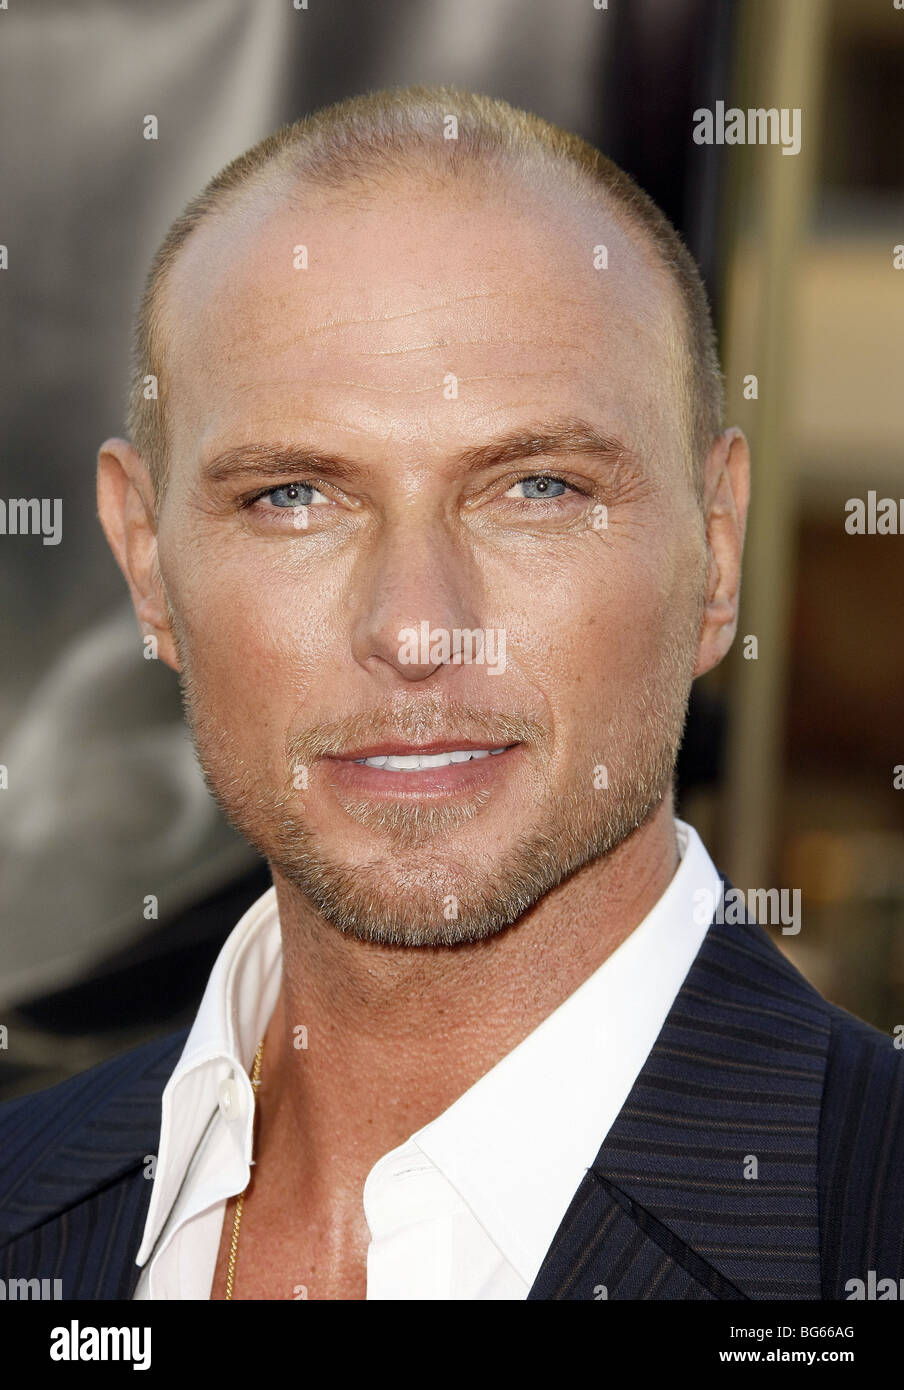 Luke Goss Hellboy Ii Stock Photos & Luke Goss Hellboy Ii ...